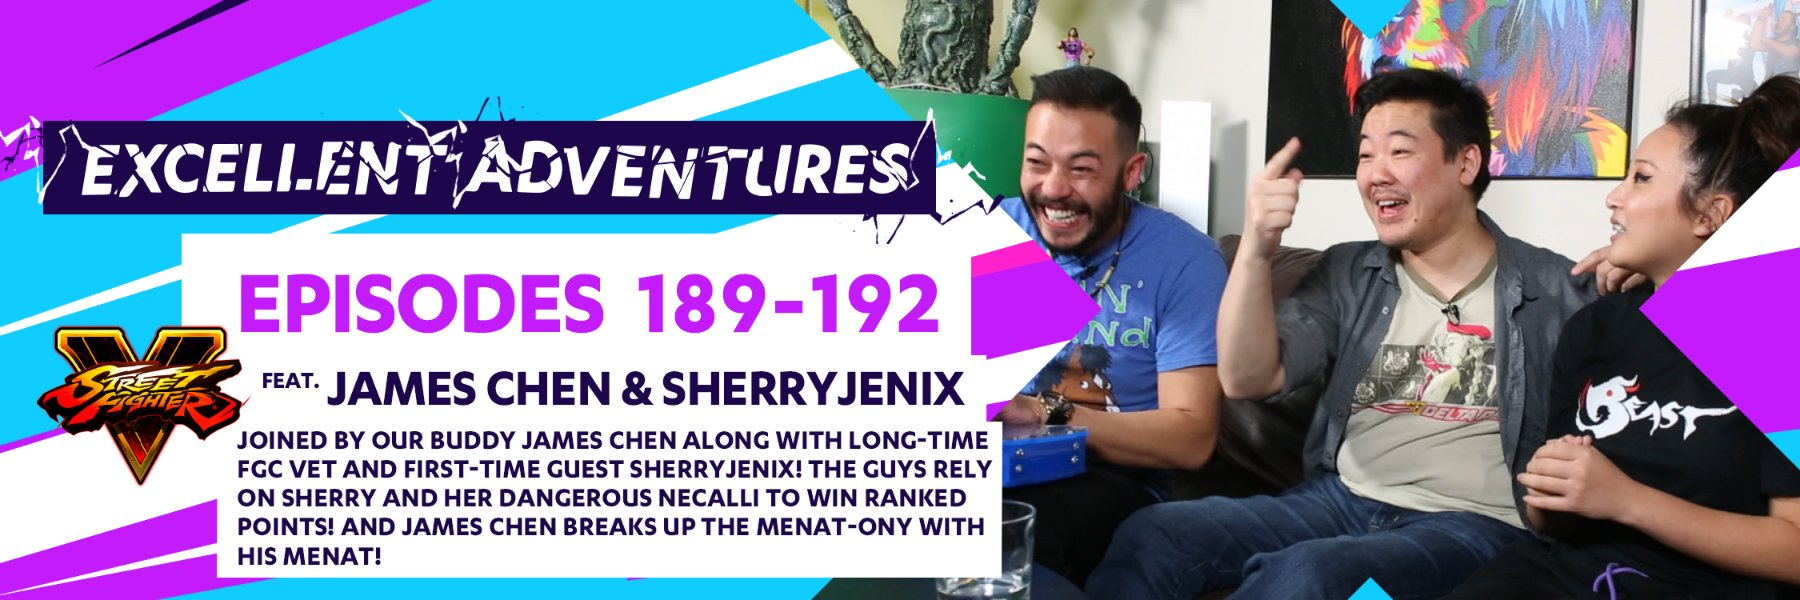 Excellent Adventures Ft. James Chen & Sherry Jenix